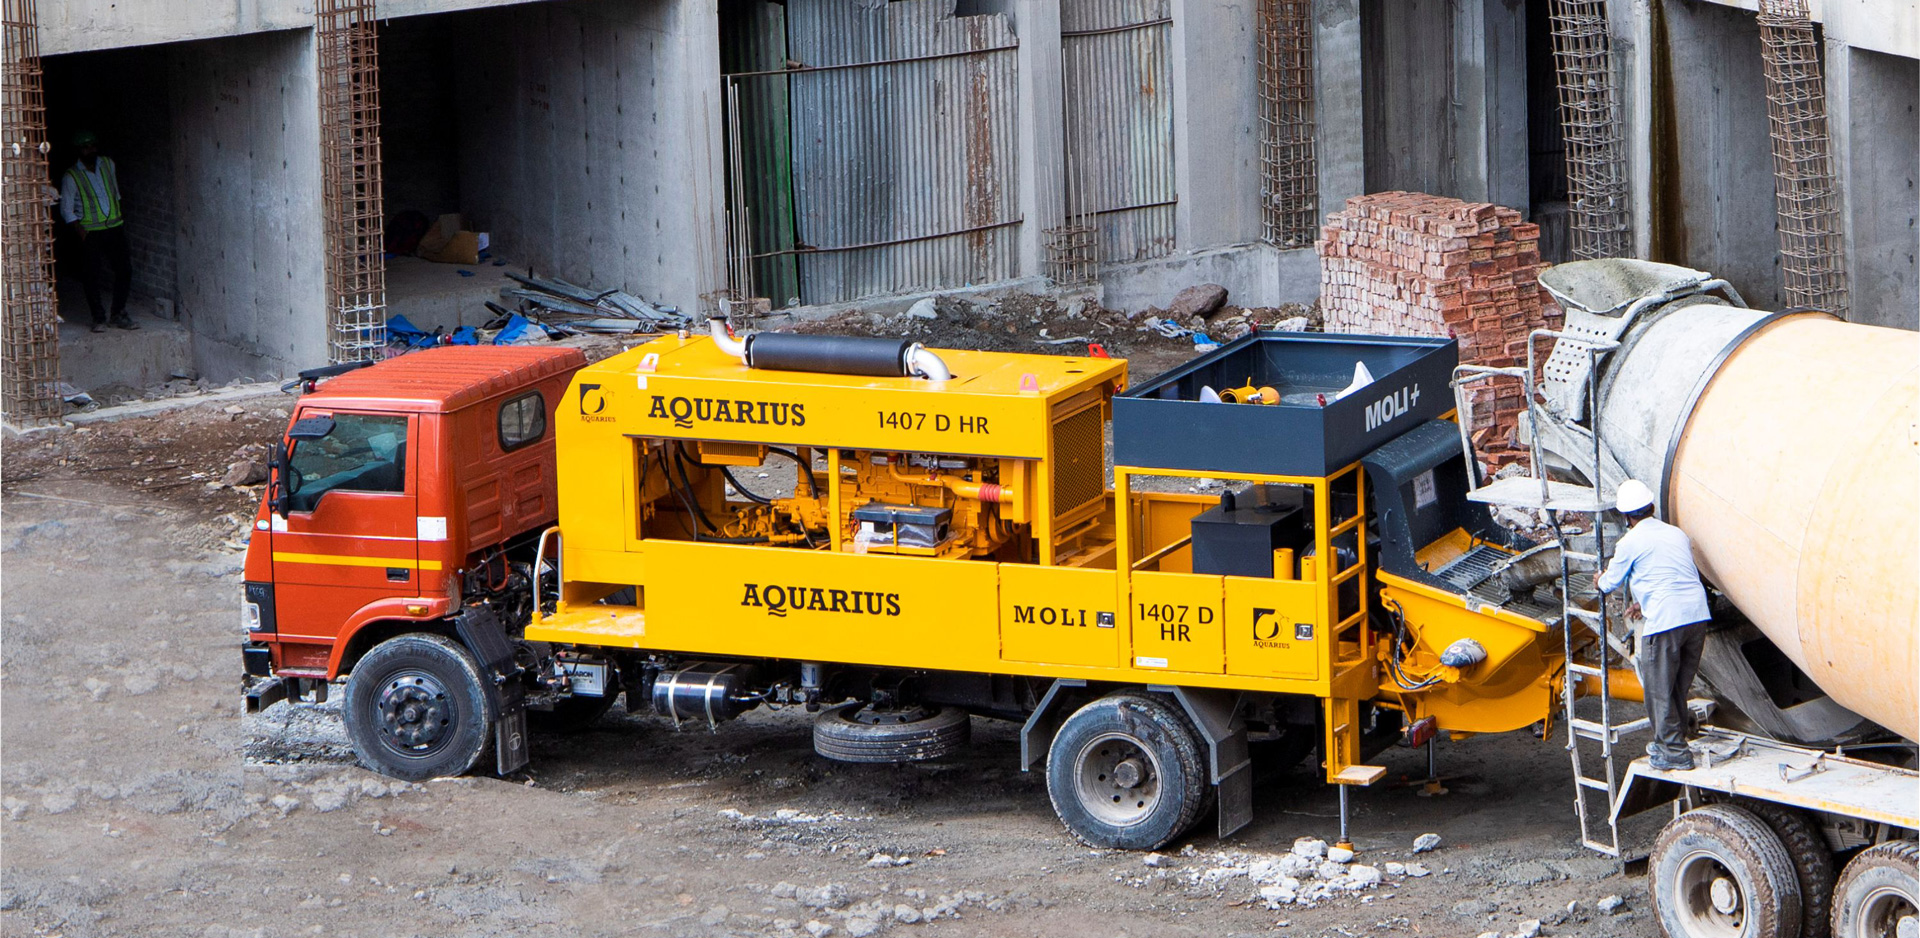 Aquarius 1407 D HR MOLI+ working at Amanora Gold Towers Project, Pune (60 m horizontal & 108 m vertical achieved)